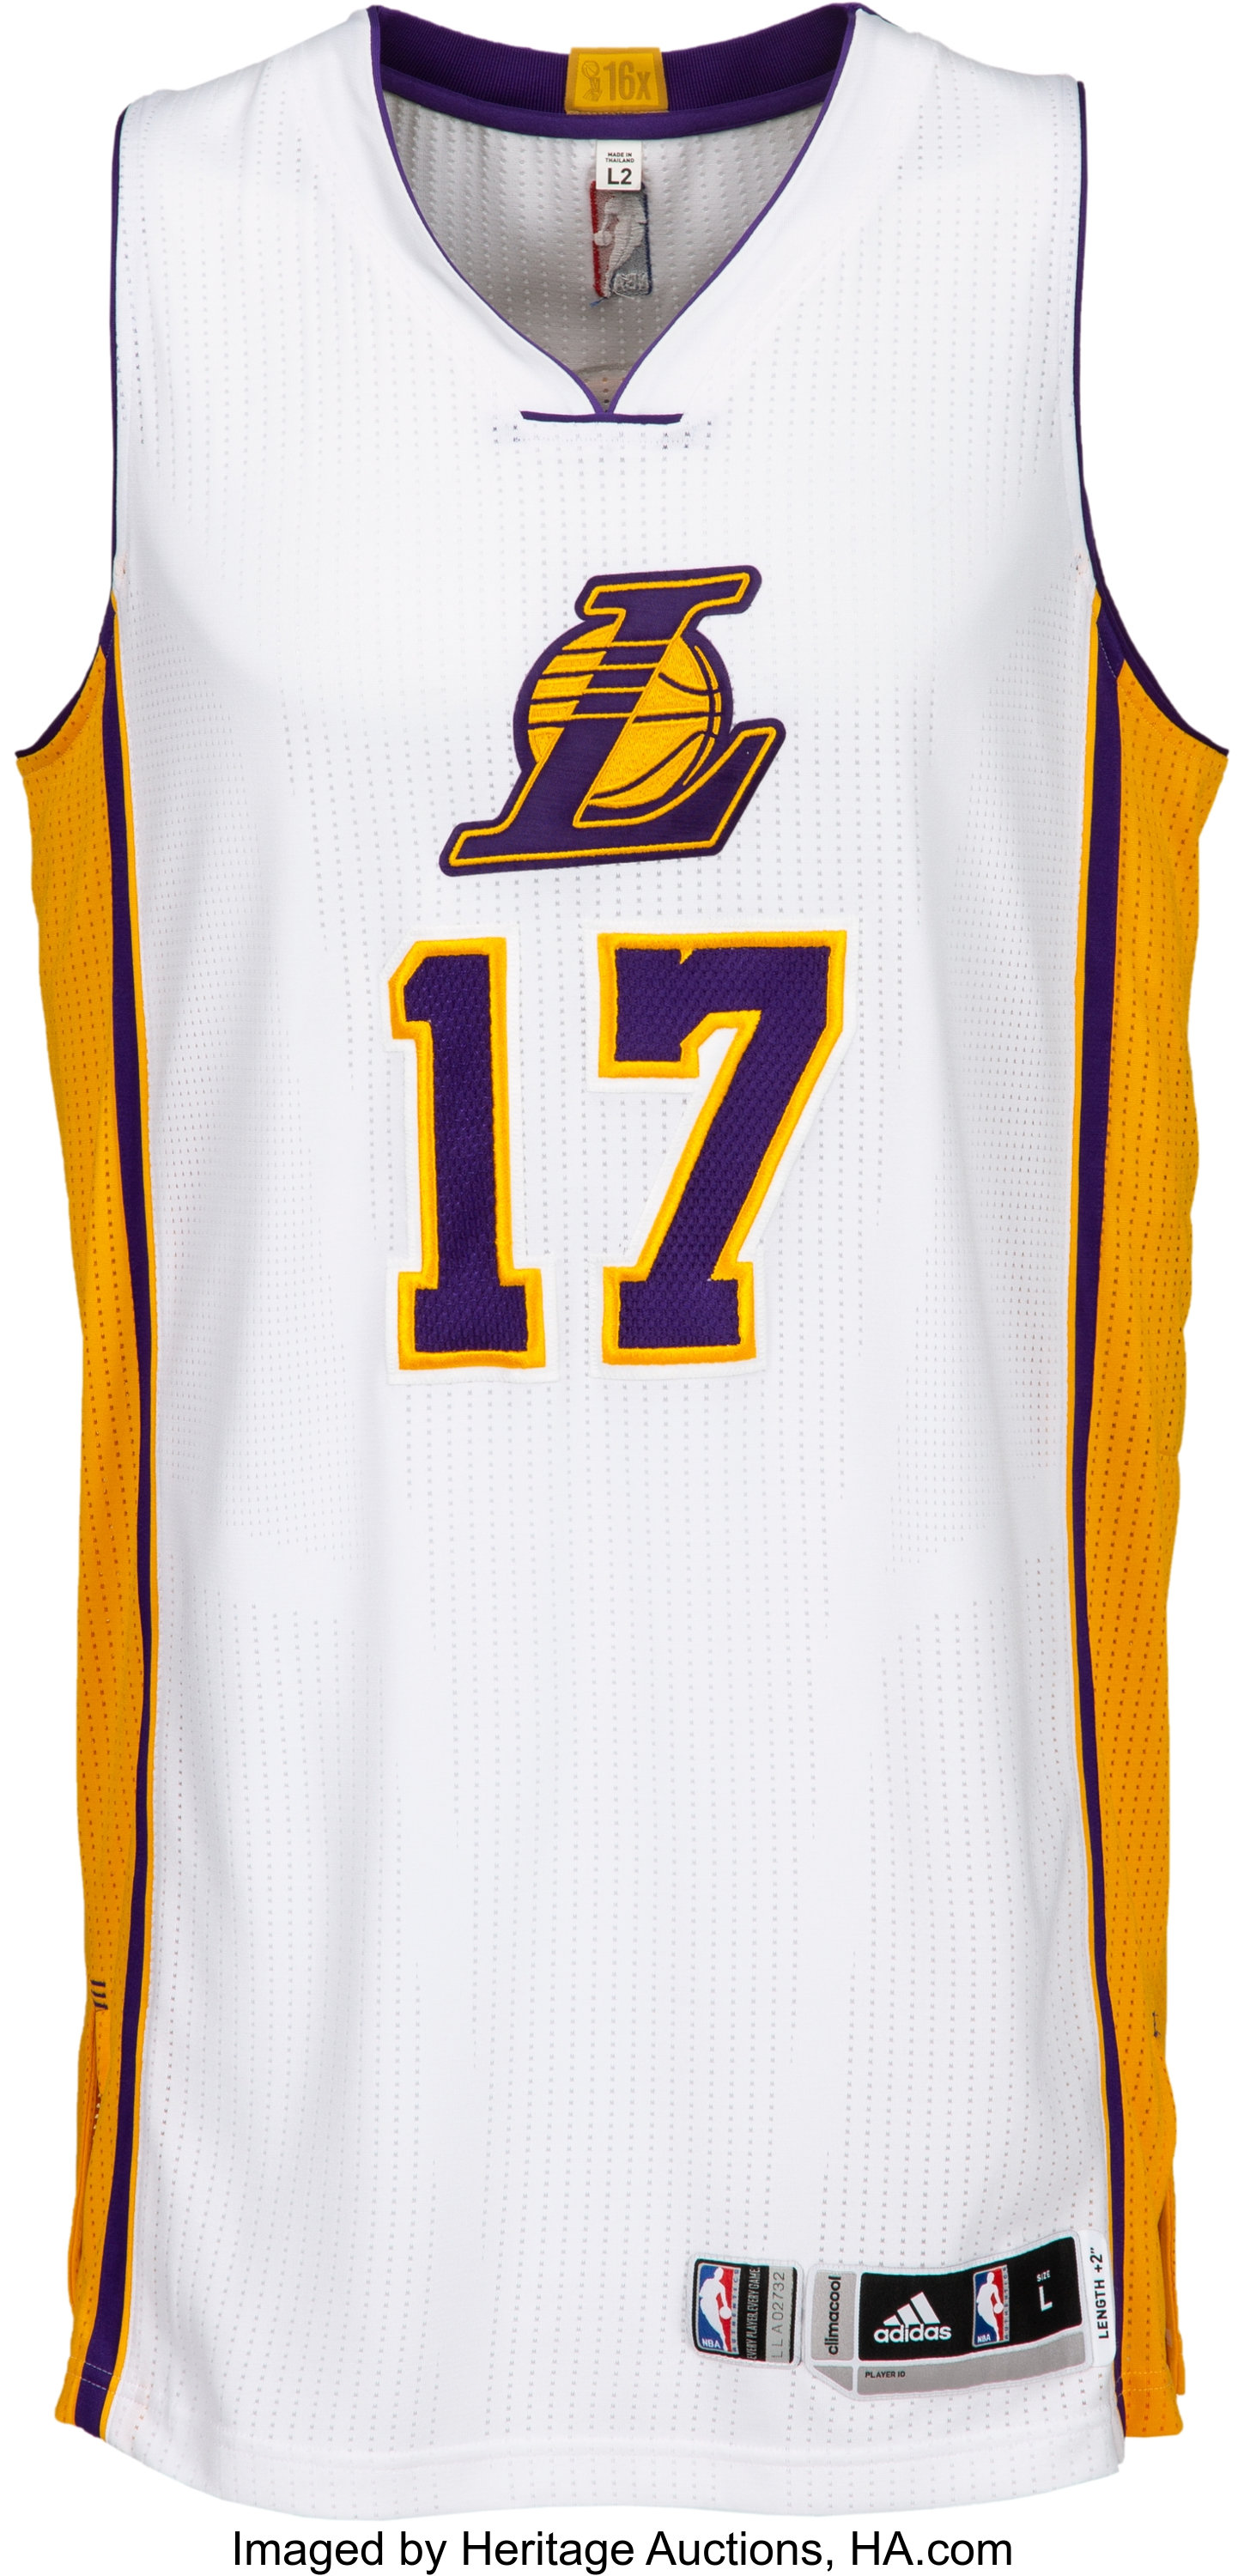 2014-15 Jeremy Lin Game Worn Los Angeles Lakers Jersey - Used 12 ...